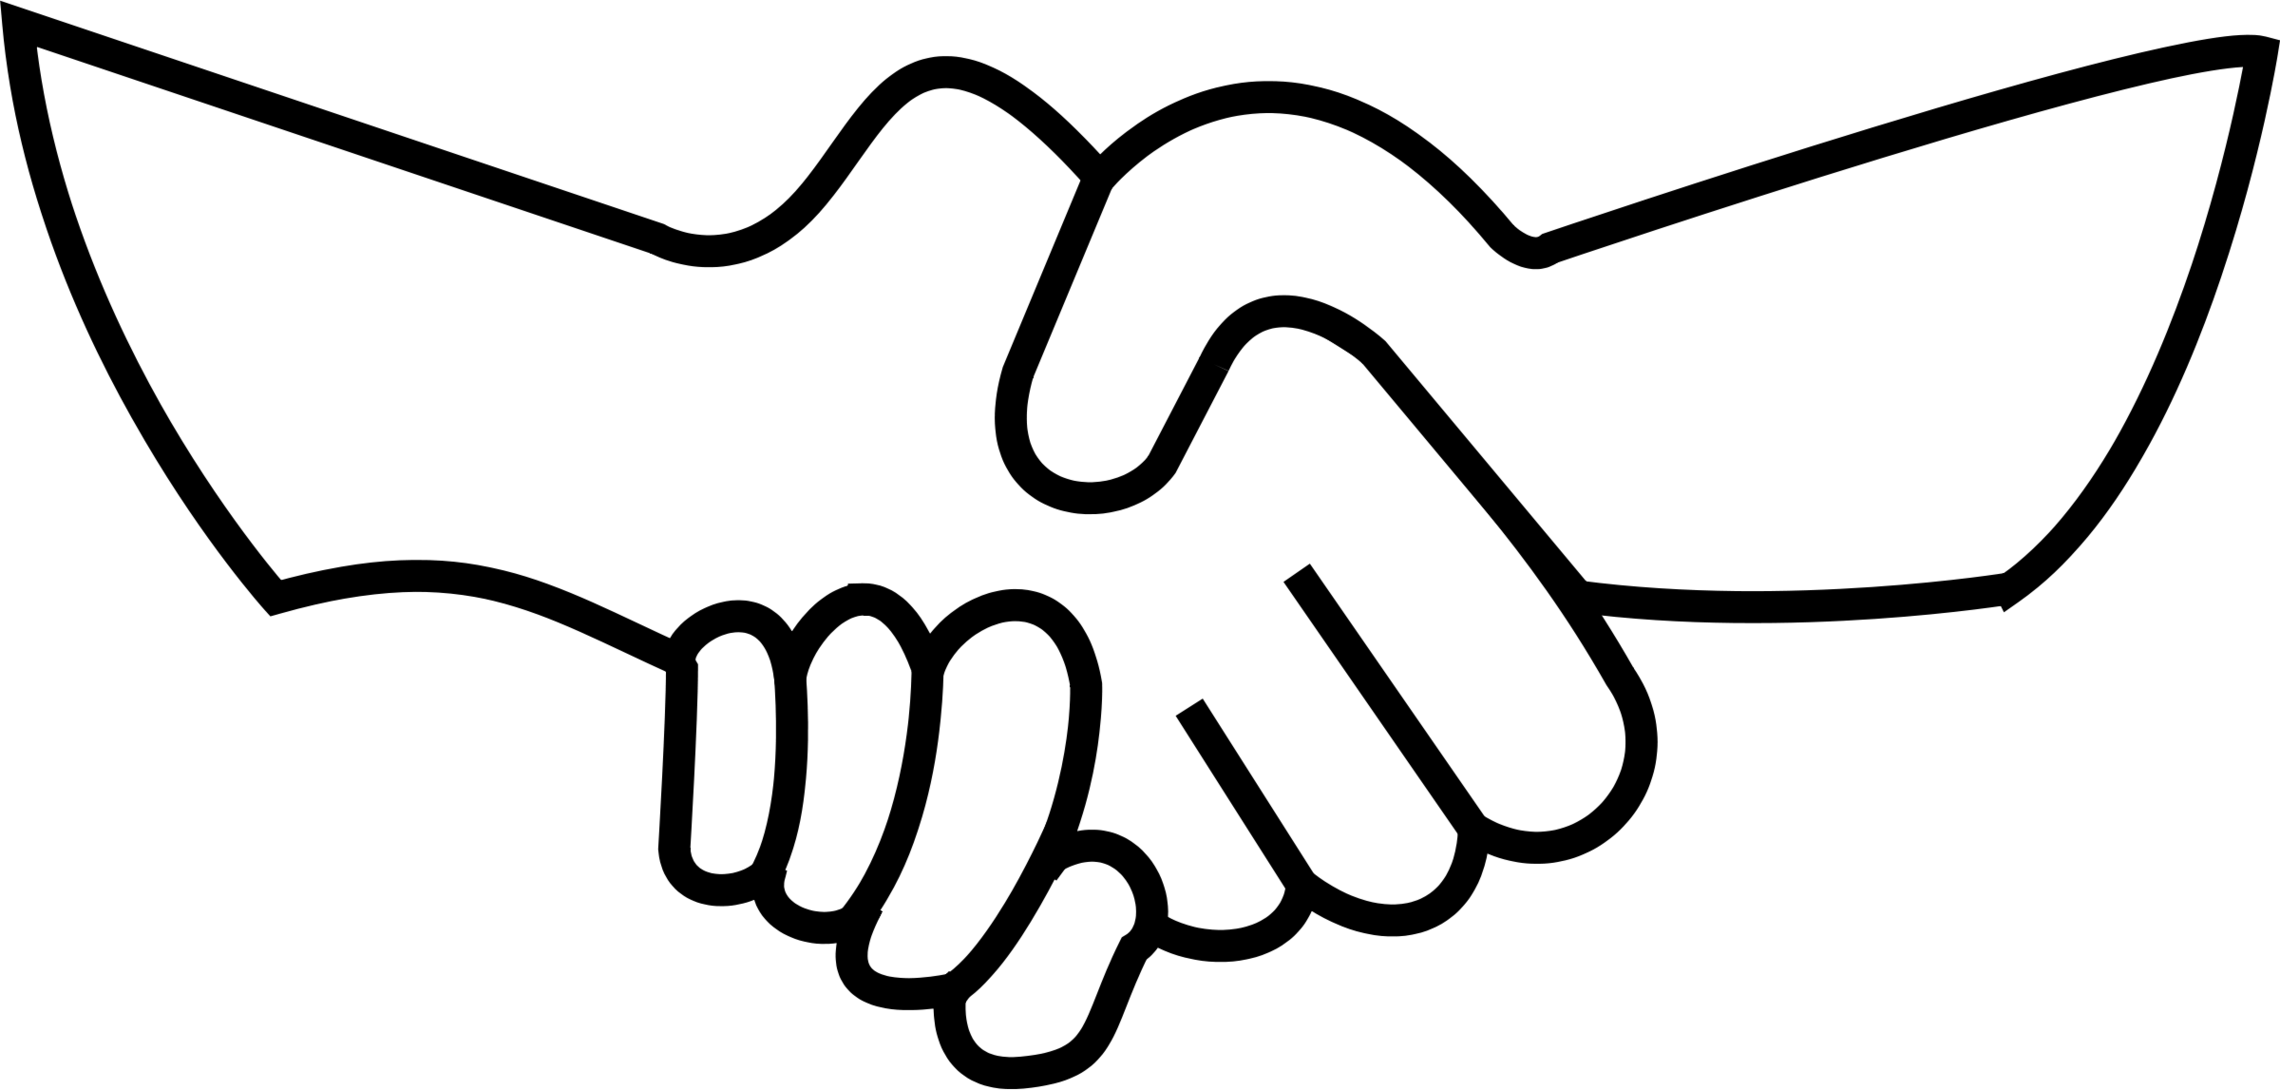 Hand clip clasped. Shaking hands image